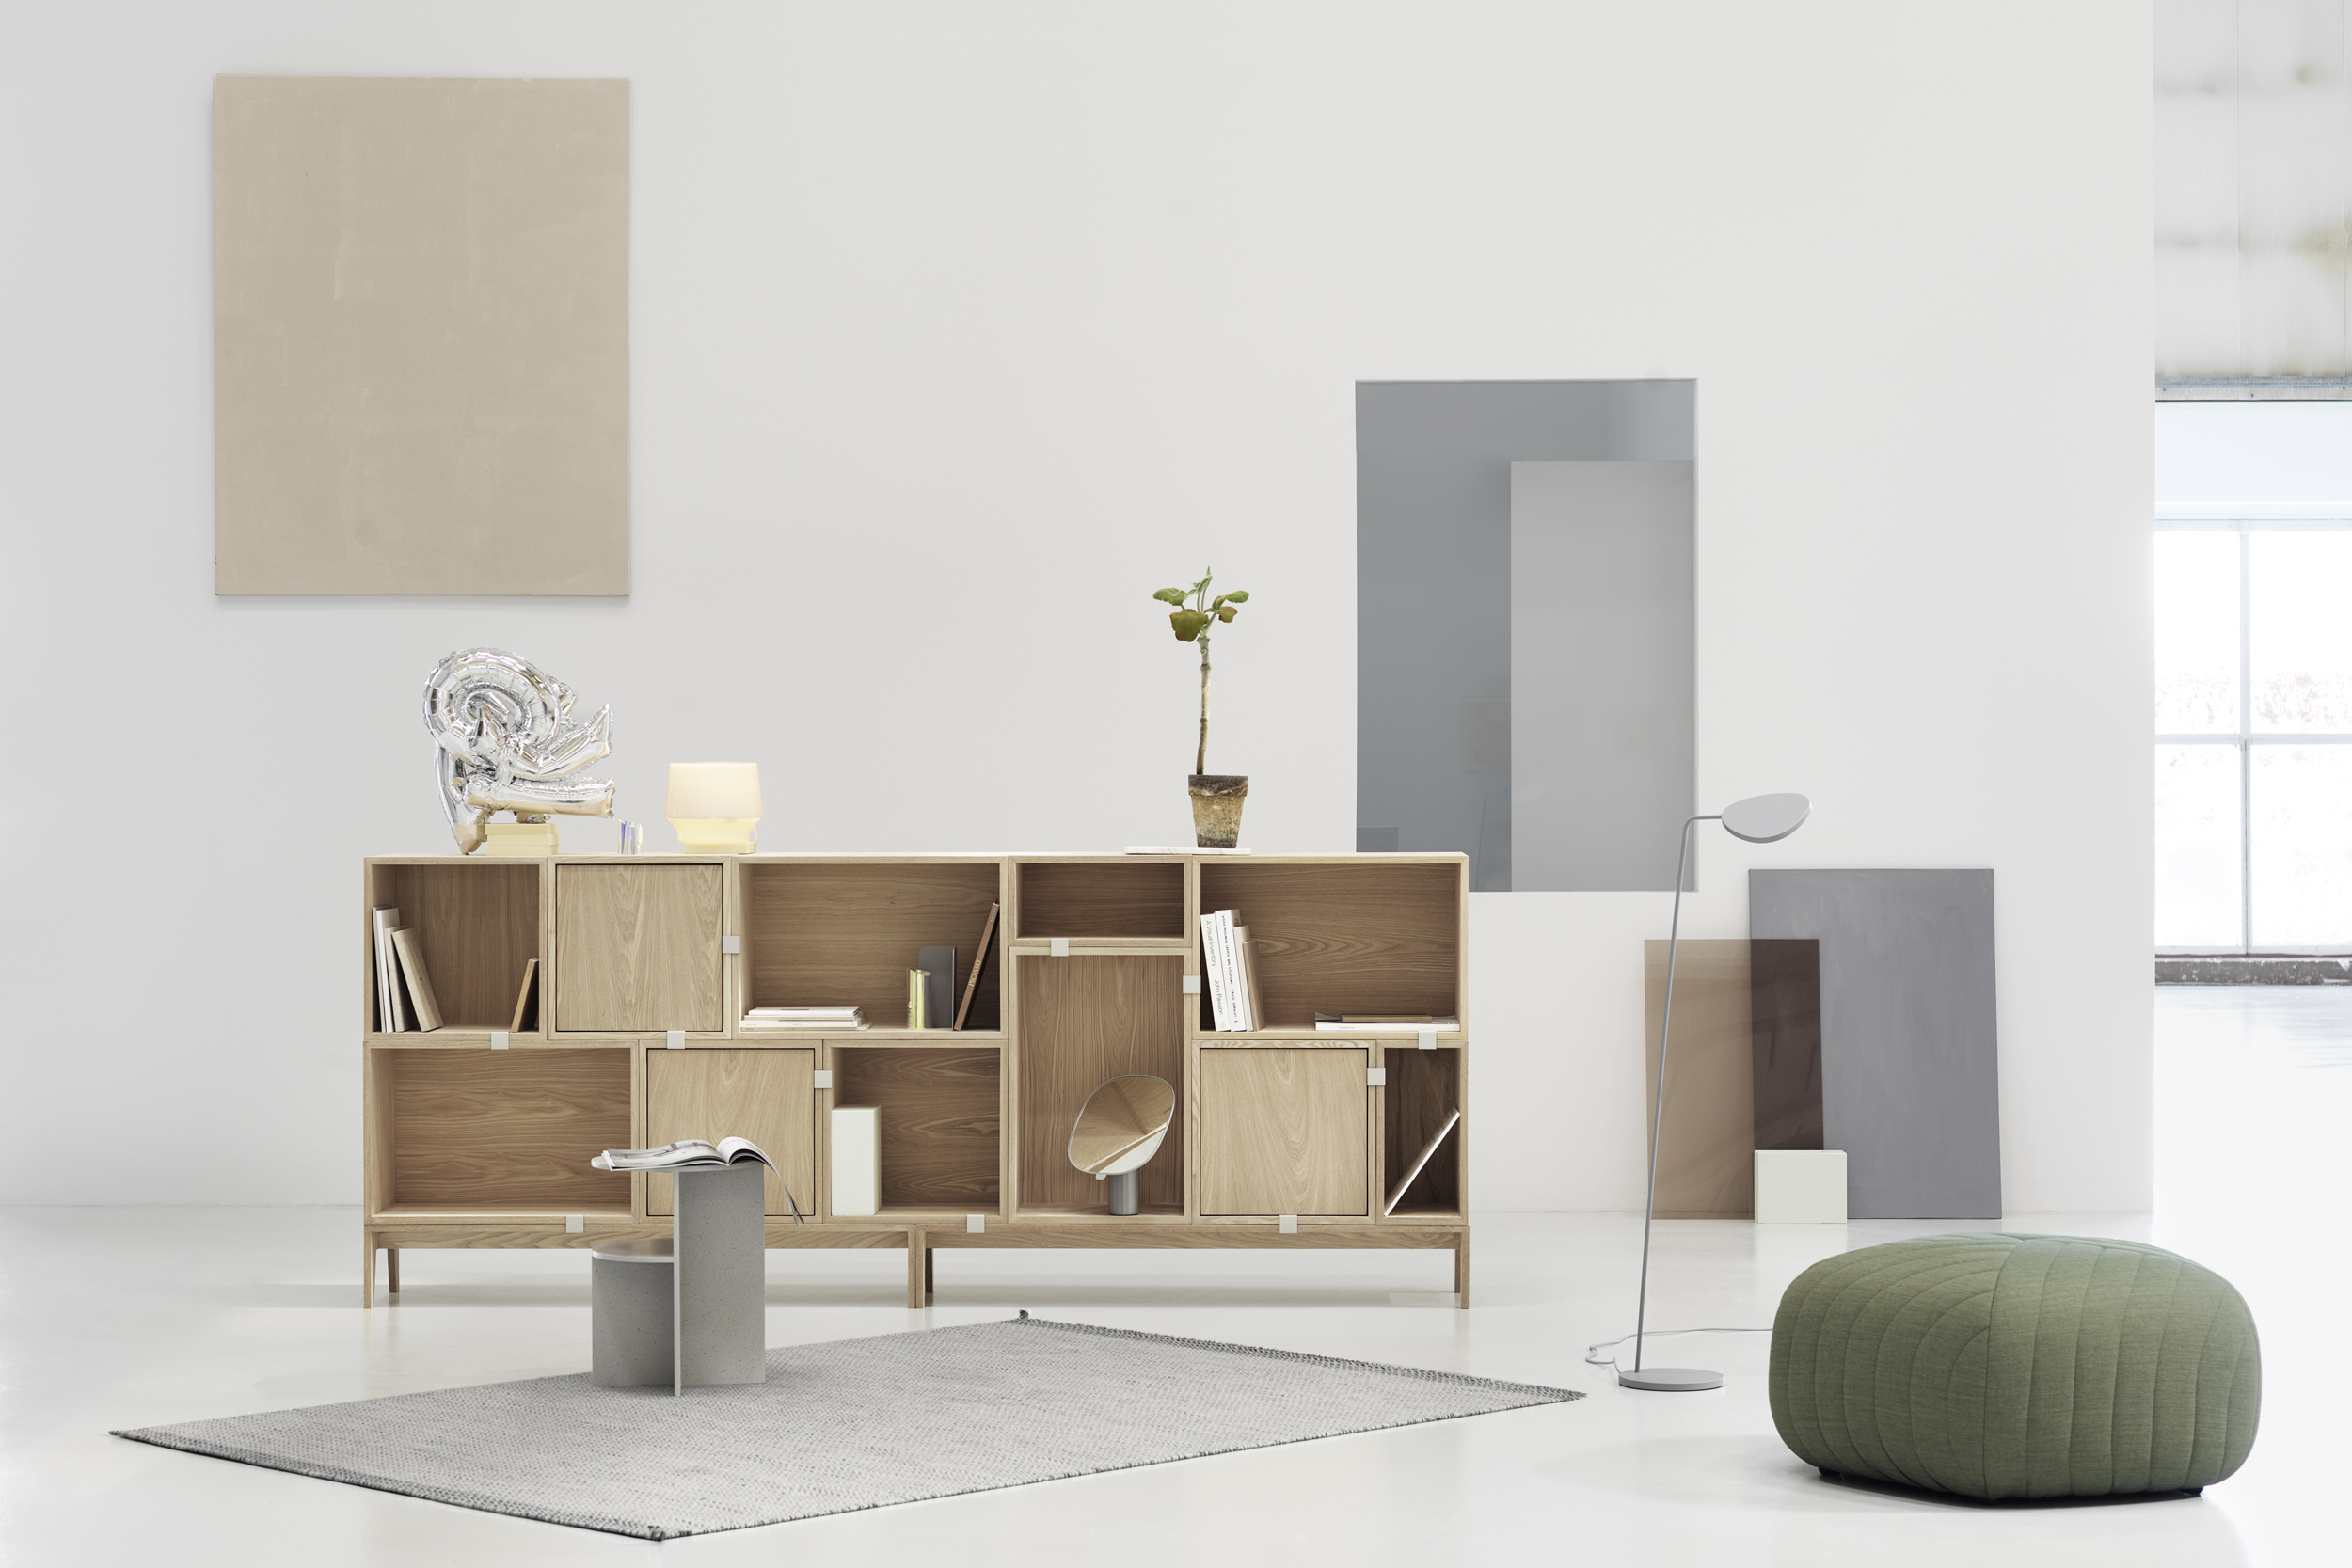 Stacked-Oak-Config-7-Half-Side-Table-Five-remix-993-Leaf-Mimic-Ply-Cosy-In-White-Landscape-org.jpg